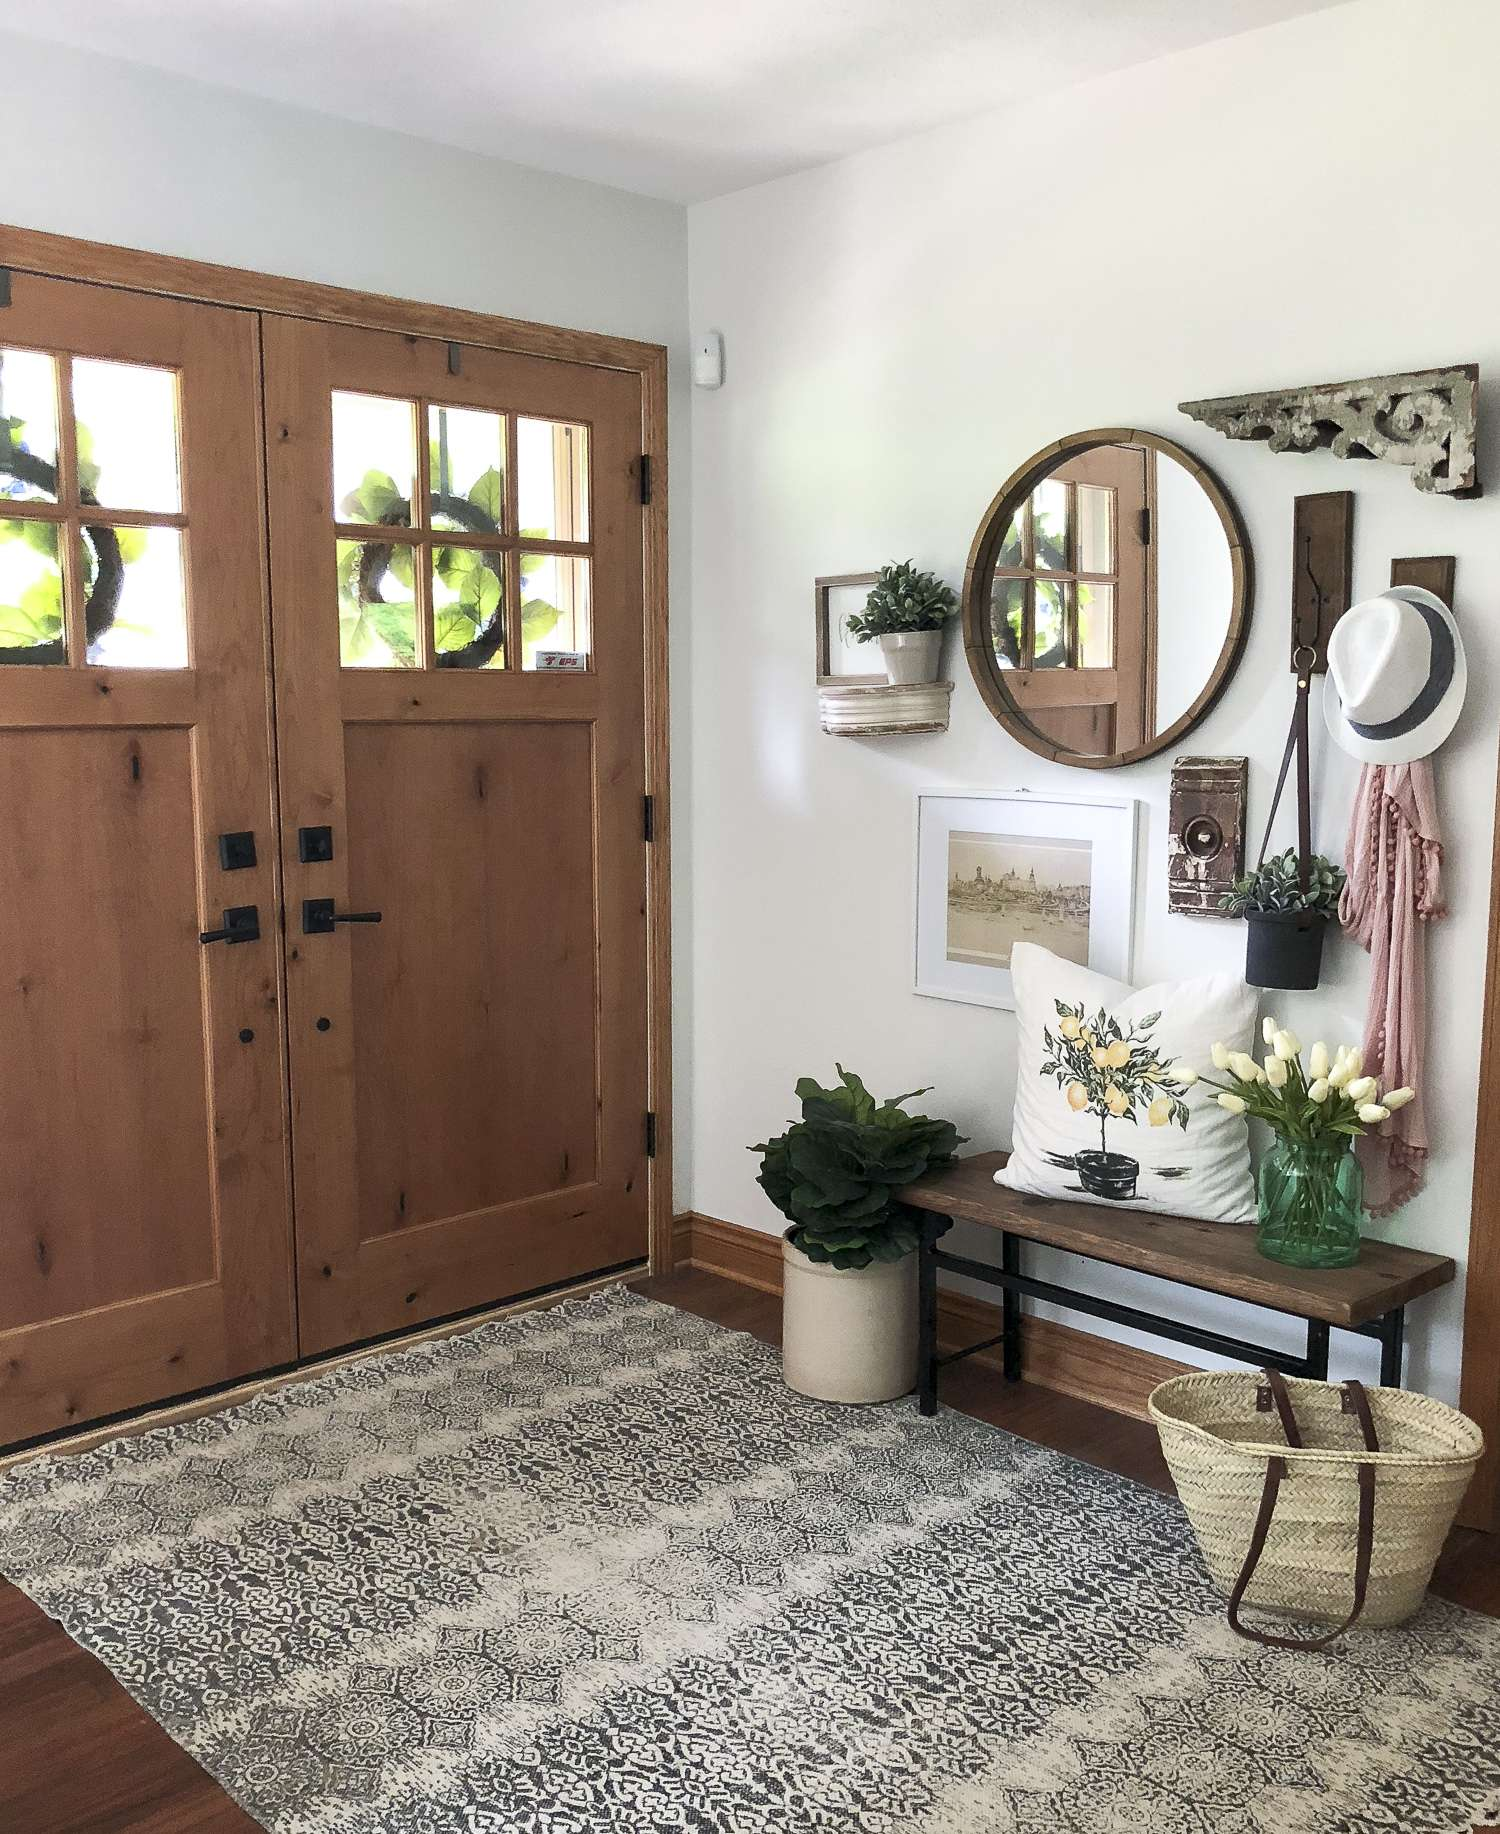 Home Design Ideas Youtube: How To Create A Welcoming Summer Entryway